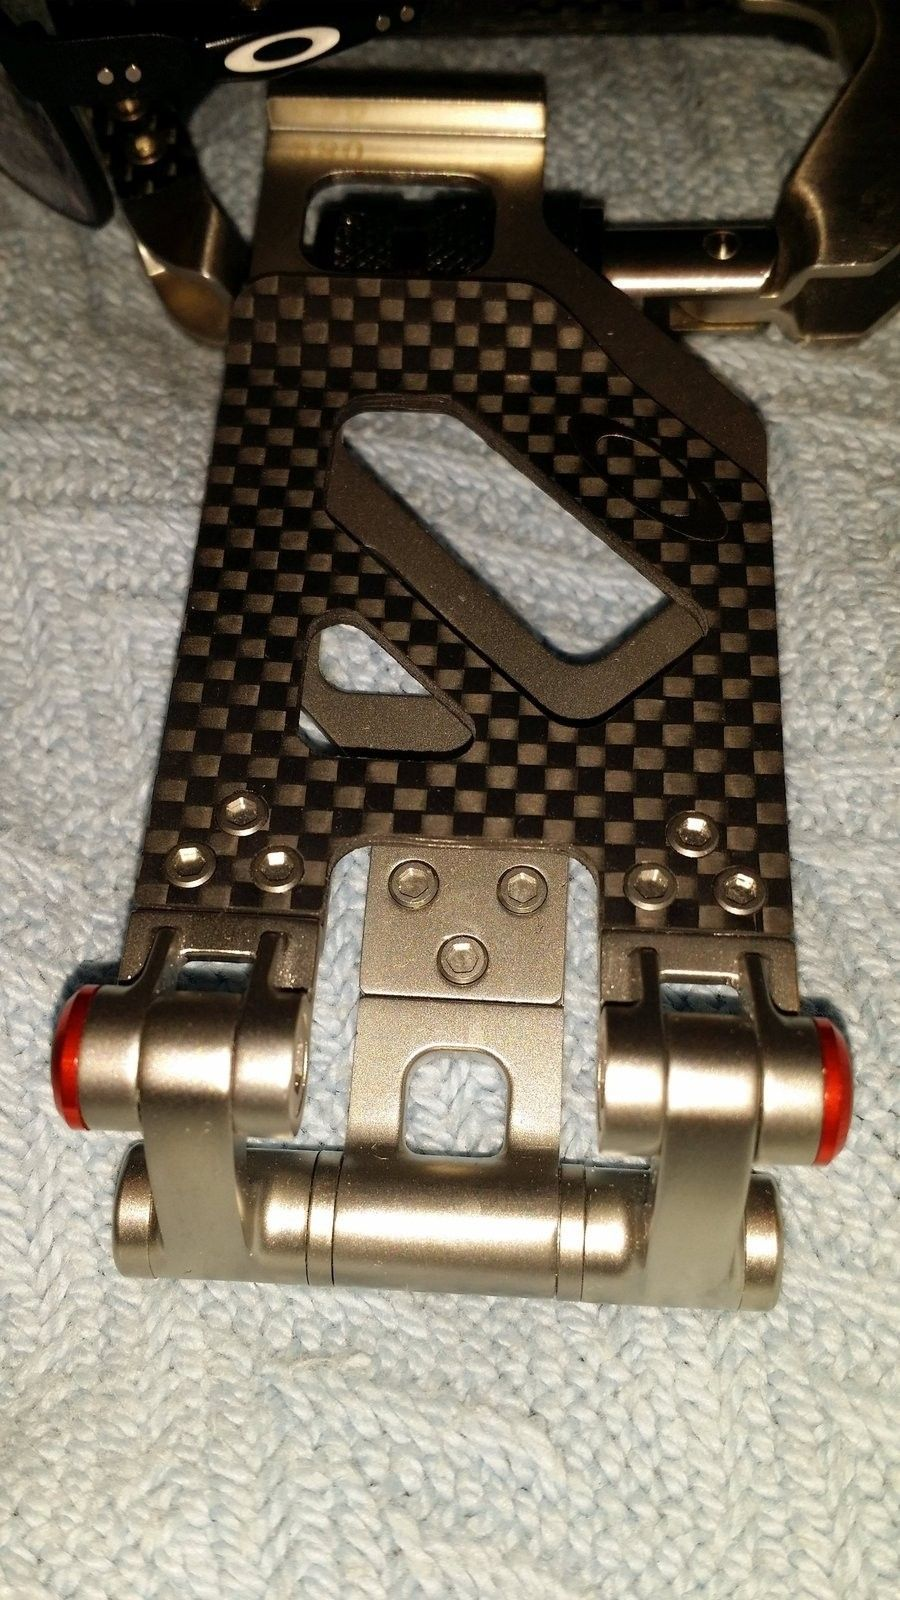 New carbon fiber clip - uploadfromtaptalk1432442934387.jpg